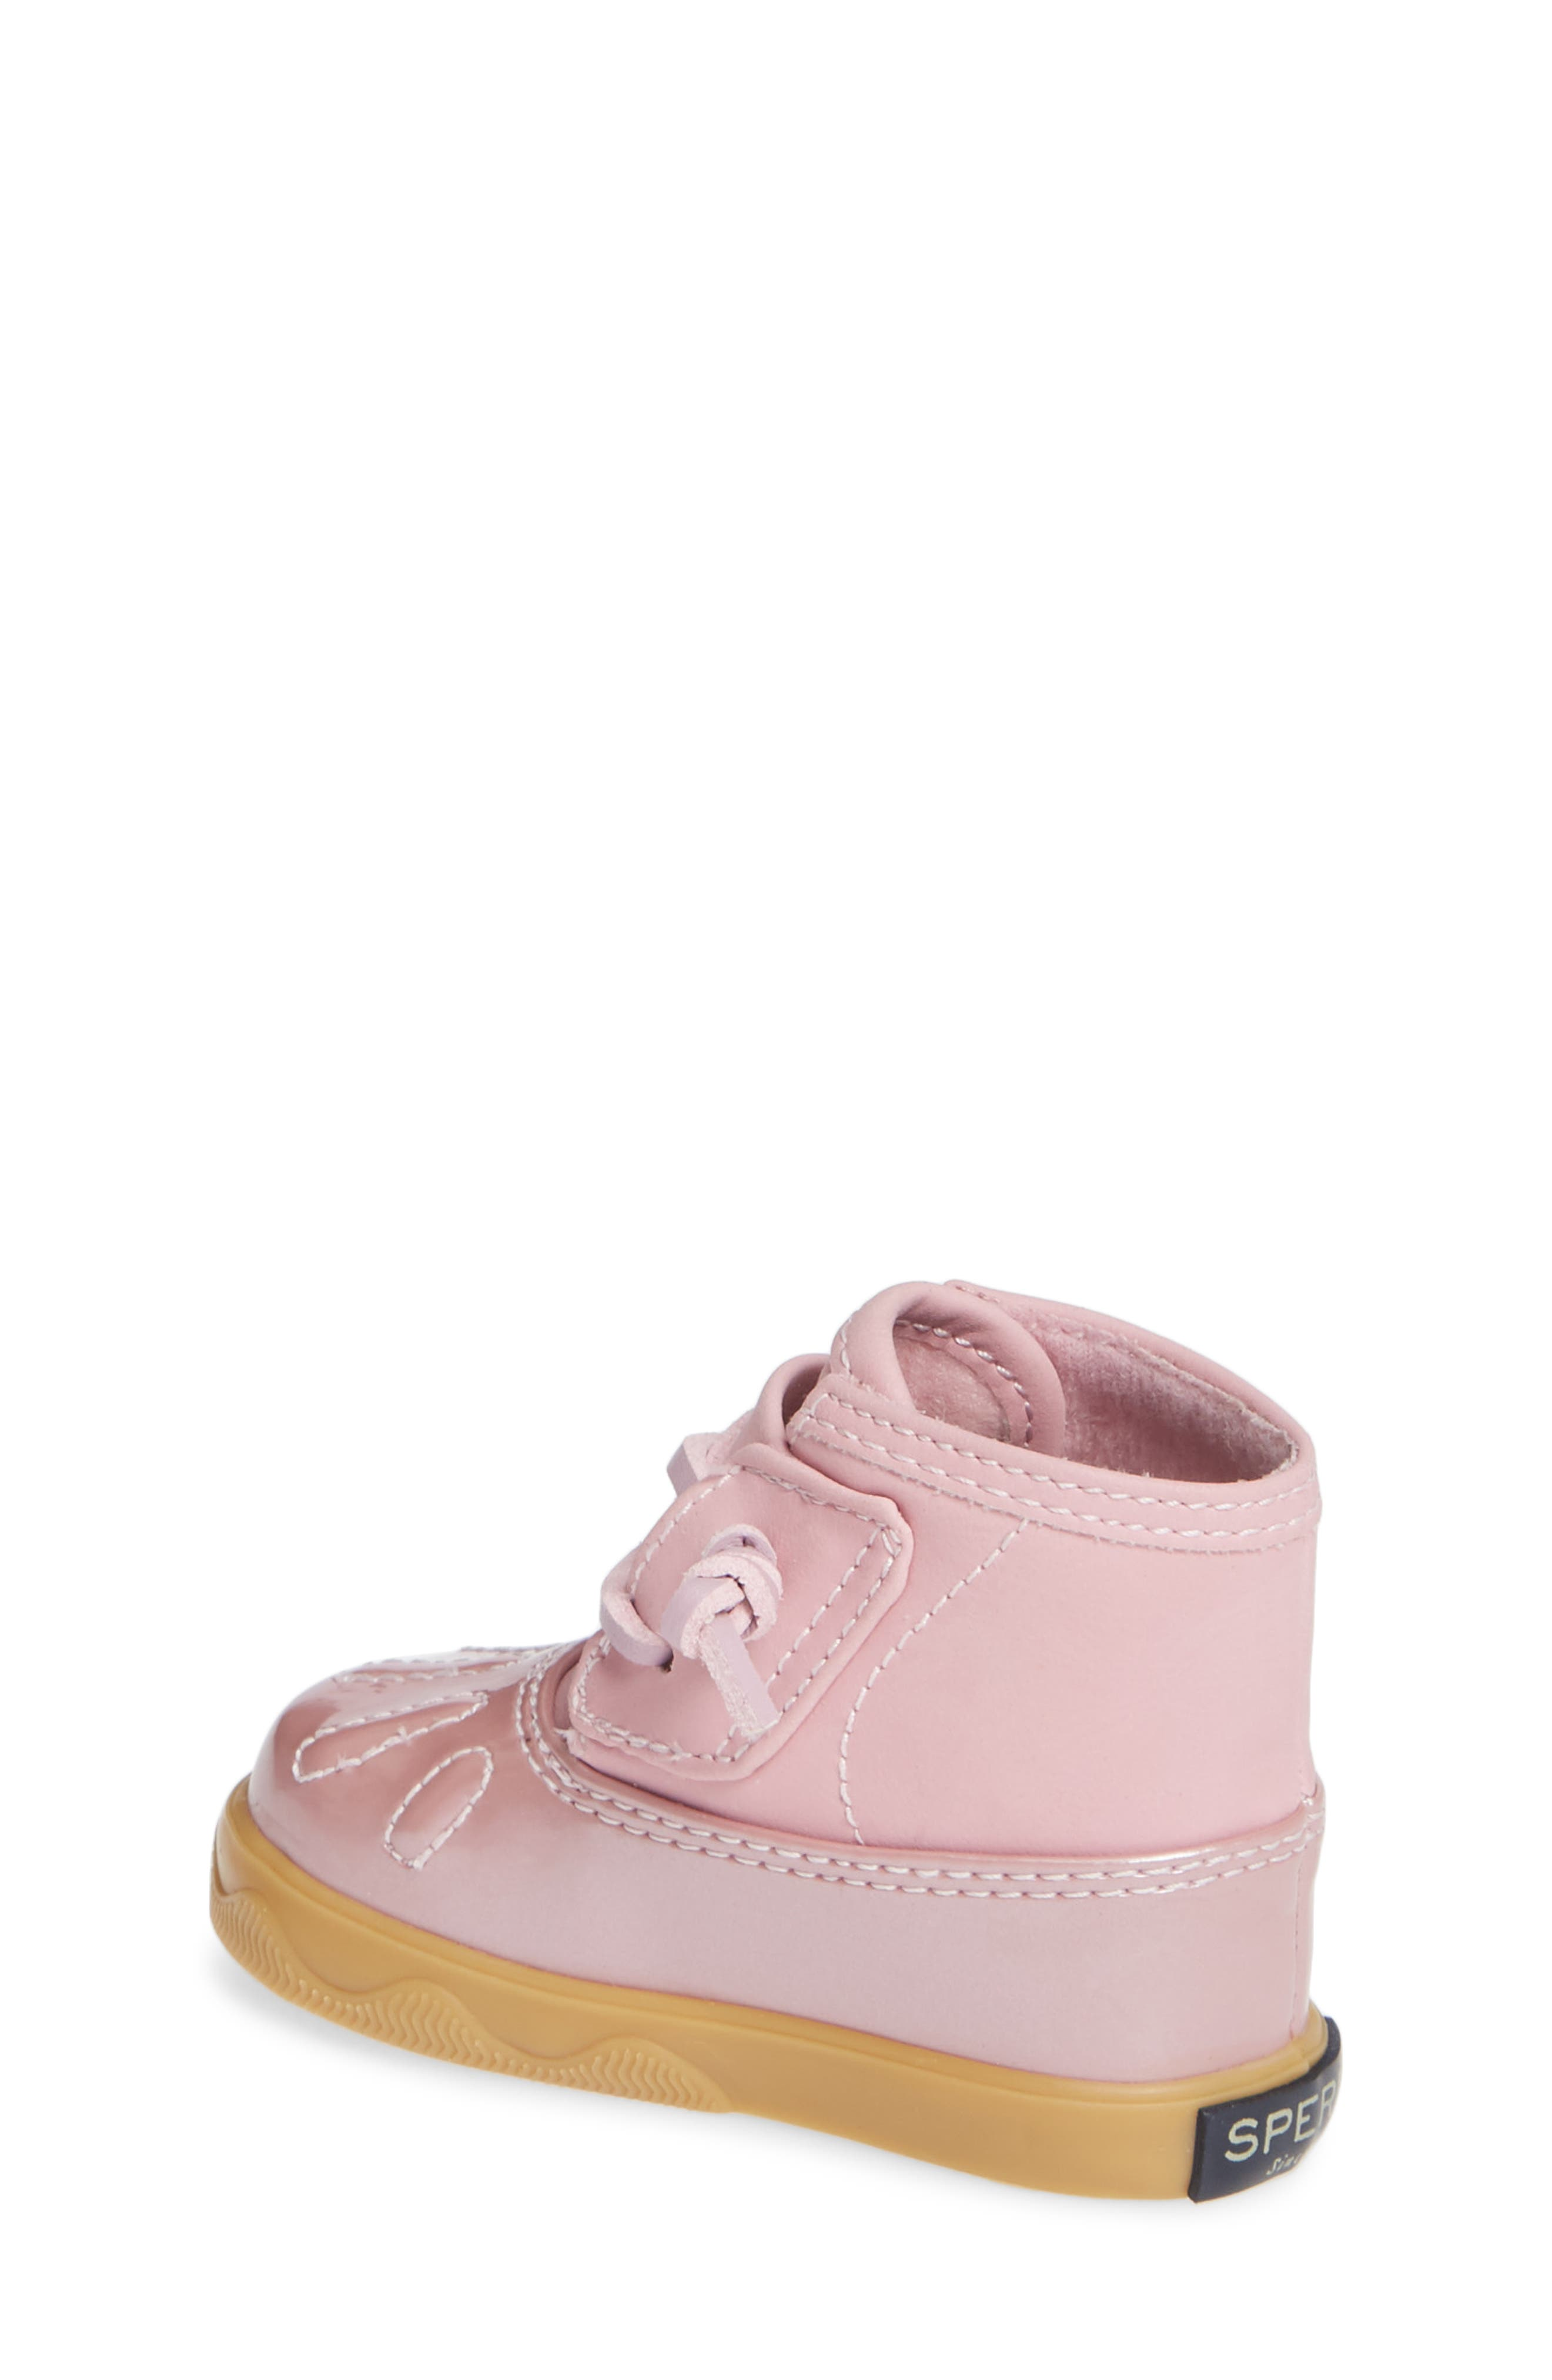 SPERRY KIDS, Sperry Icestorm Crib Duck Bootie, Alternate thumbnail 2, color, 650